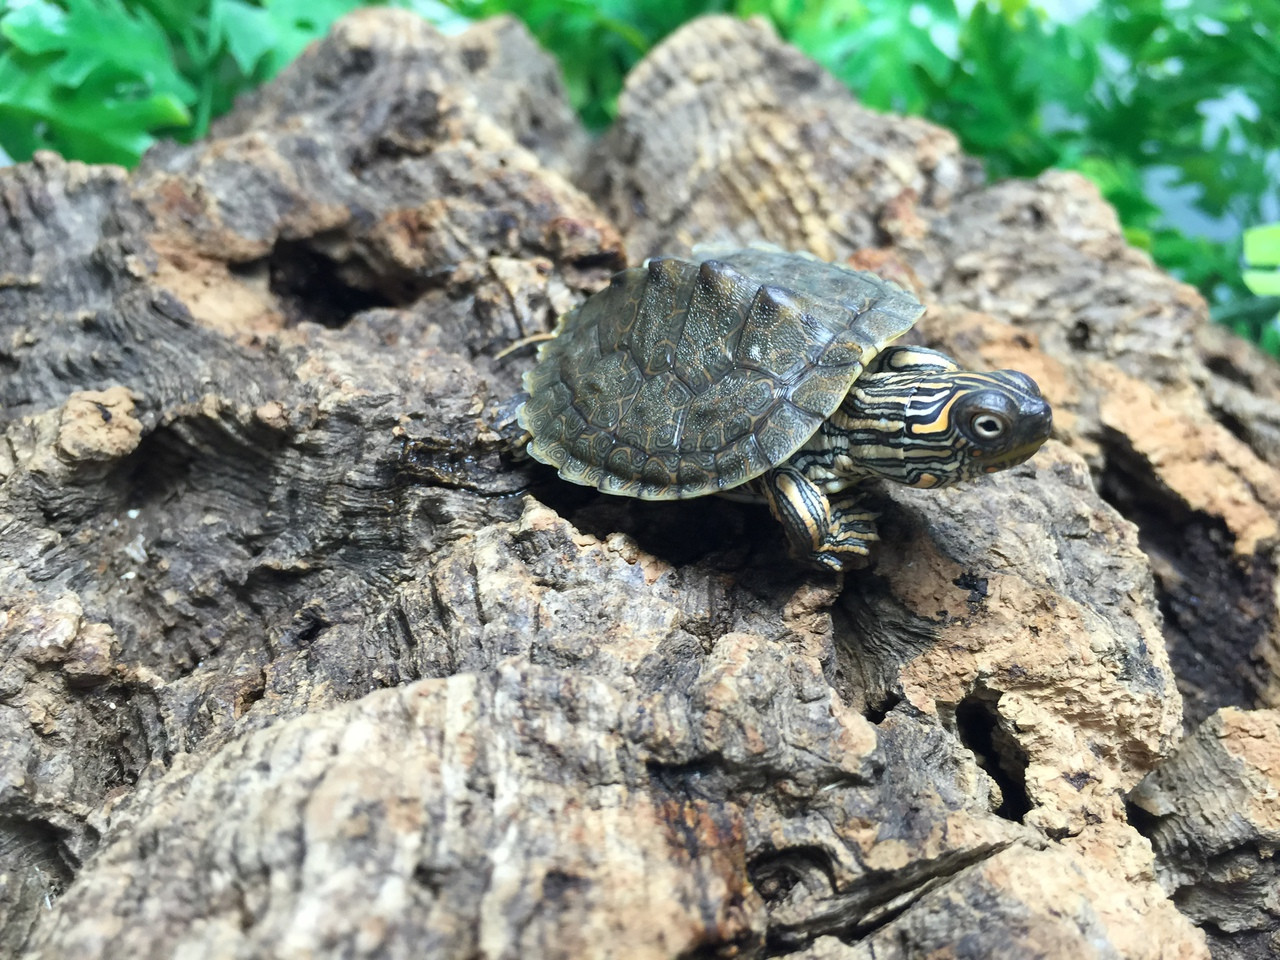 Texas Map Turtles For Sale Snakes At Sunset